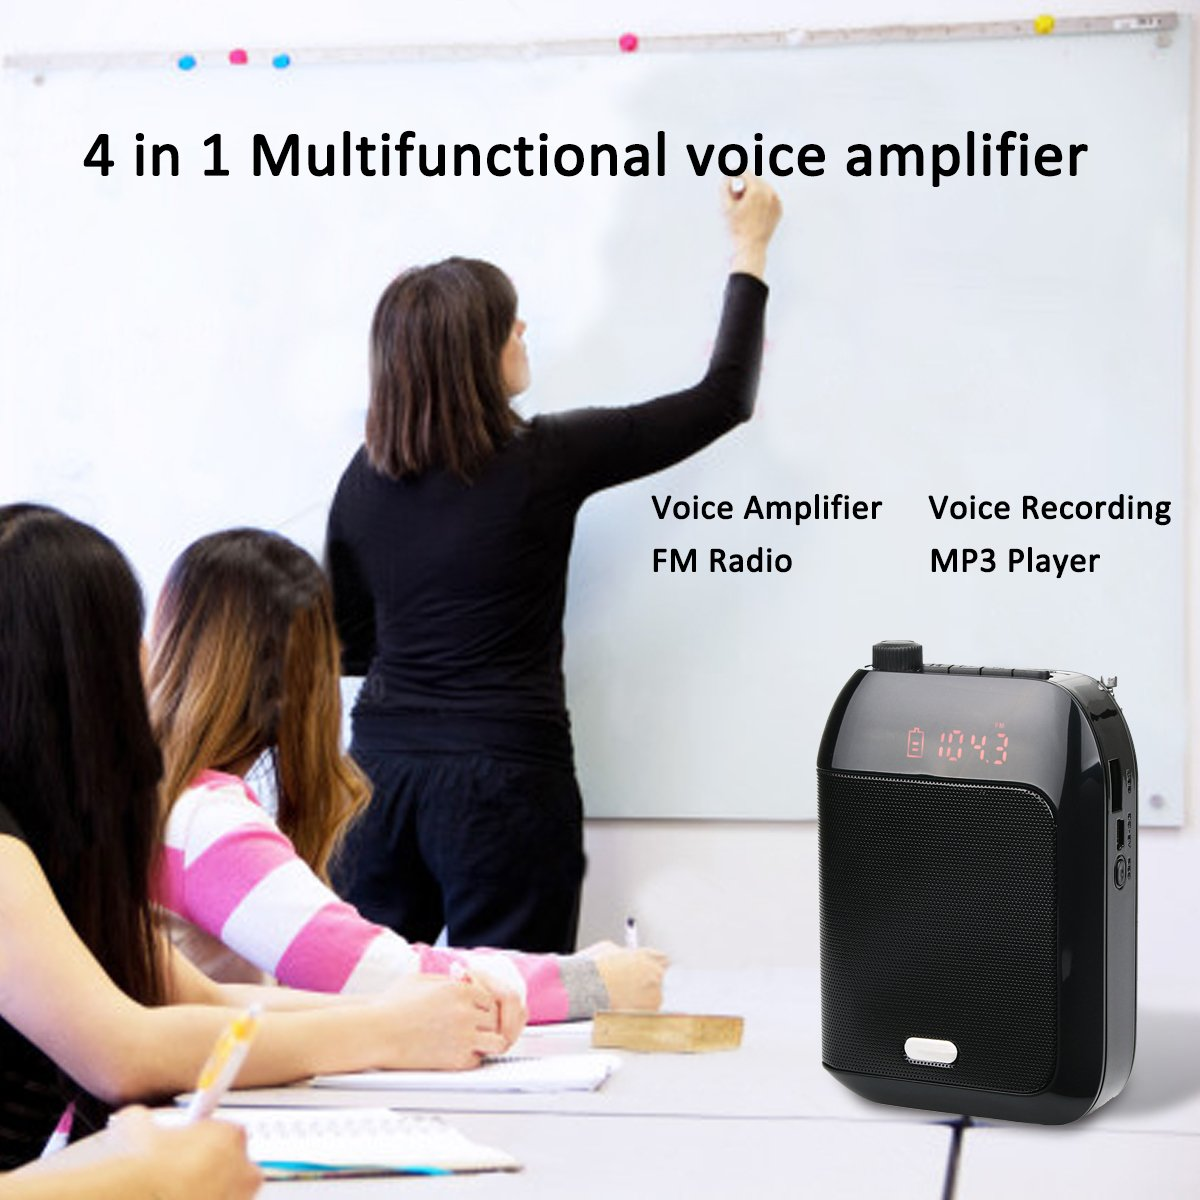 Retekess T9 15W Portable Voice Amplifier Rechargeable Mini With Wired Microphone Headset FM AUX In Jack MP3 Player Voice Recording for Teachers Coaches Training Fitness Class(Black) by Retekess (Image #3)